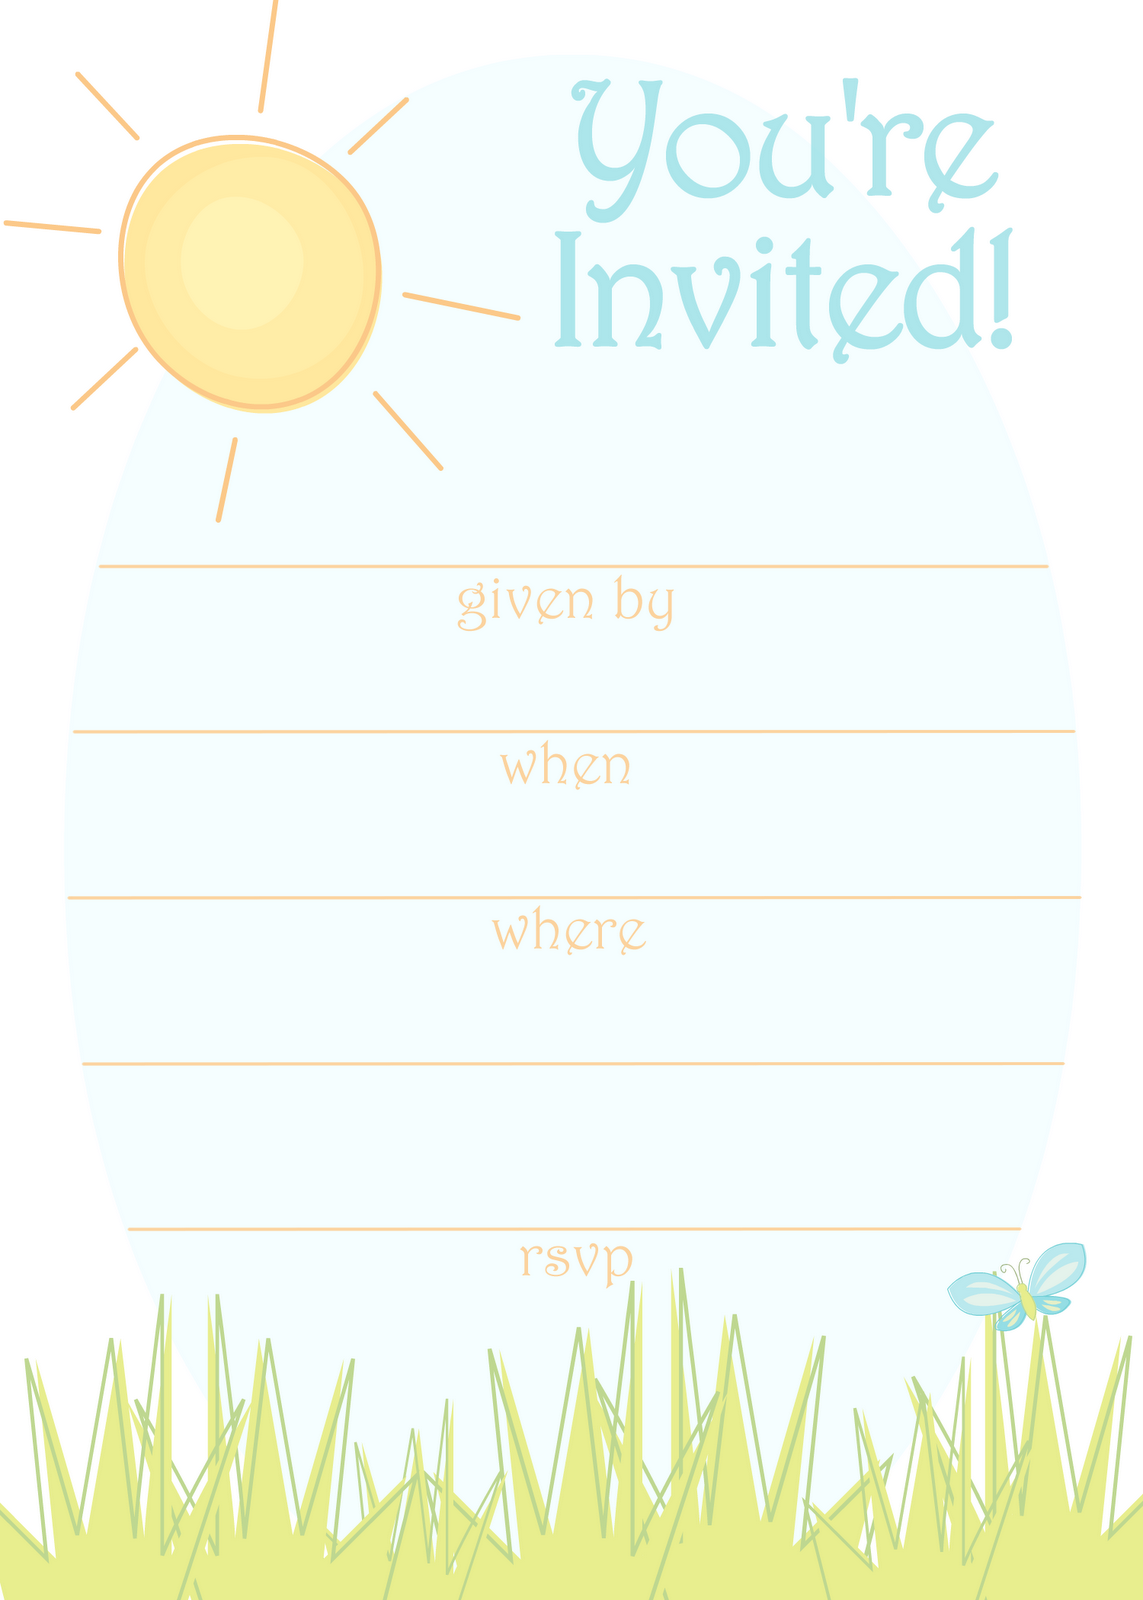 Sunny Day Invitation for a Summer Party | DIY & Craft: Free ...